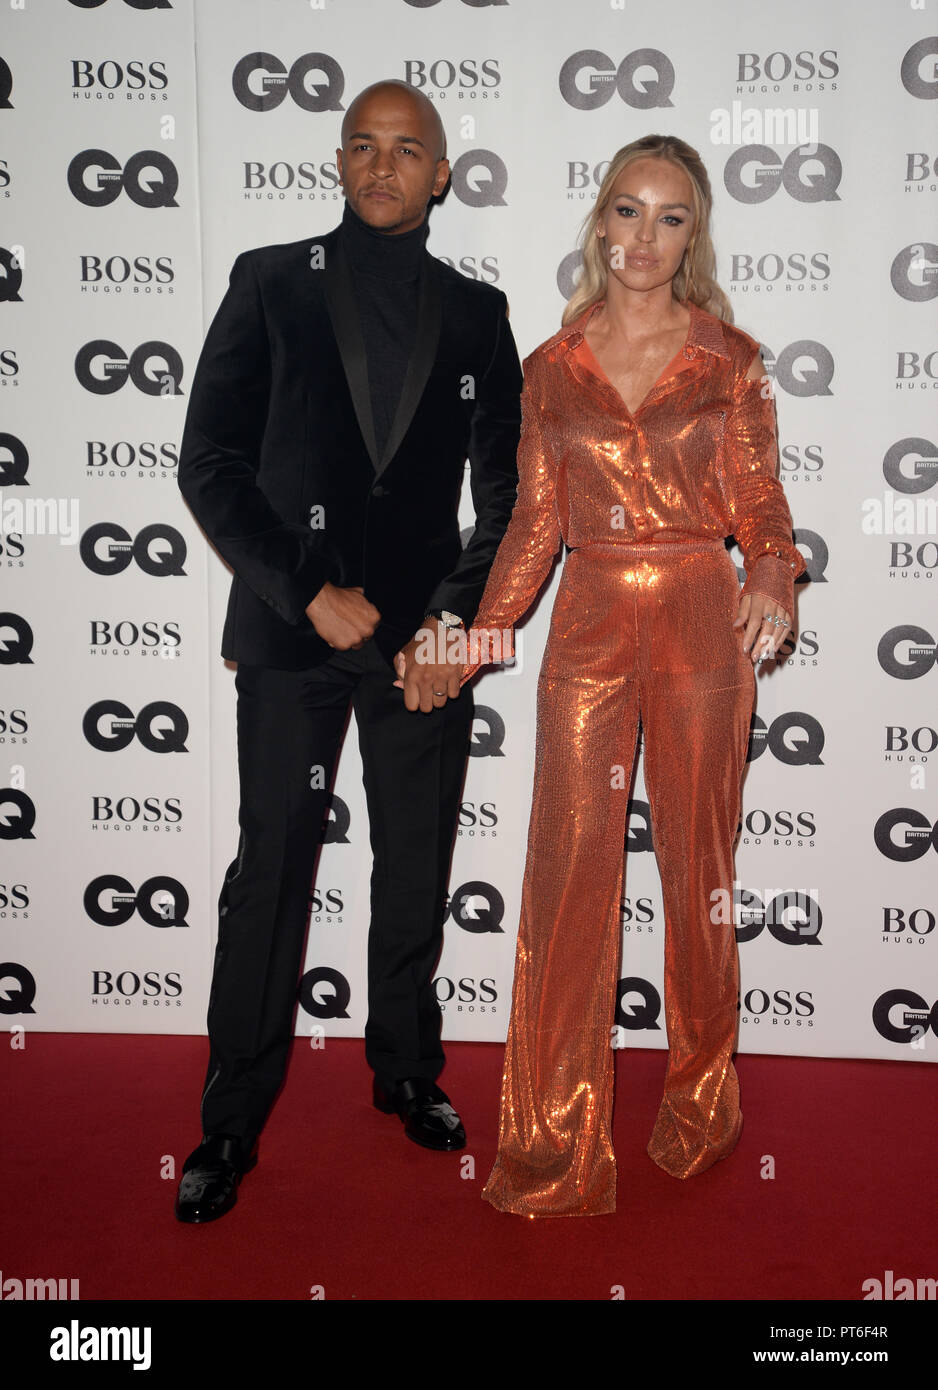 GQ Men Of The Year Awards  Featuring: Katie Piper Where: London, United Kingdom When: 05 Sep 2018 Credit: Tony Oudot/WENN - Stock Image